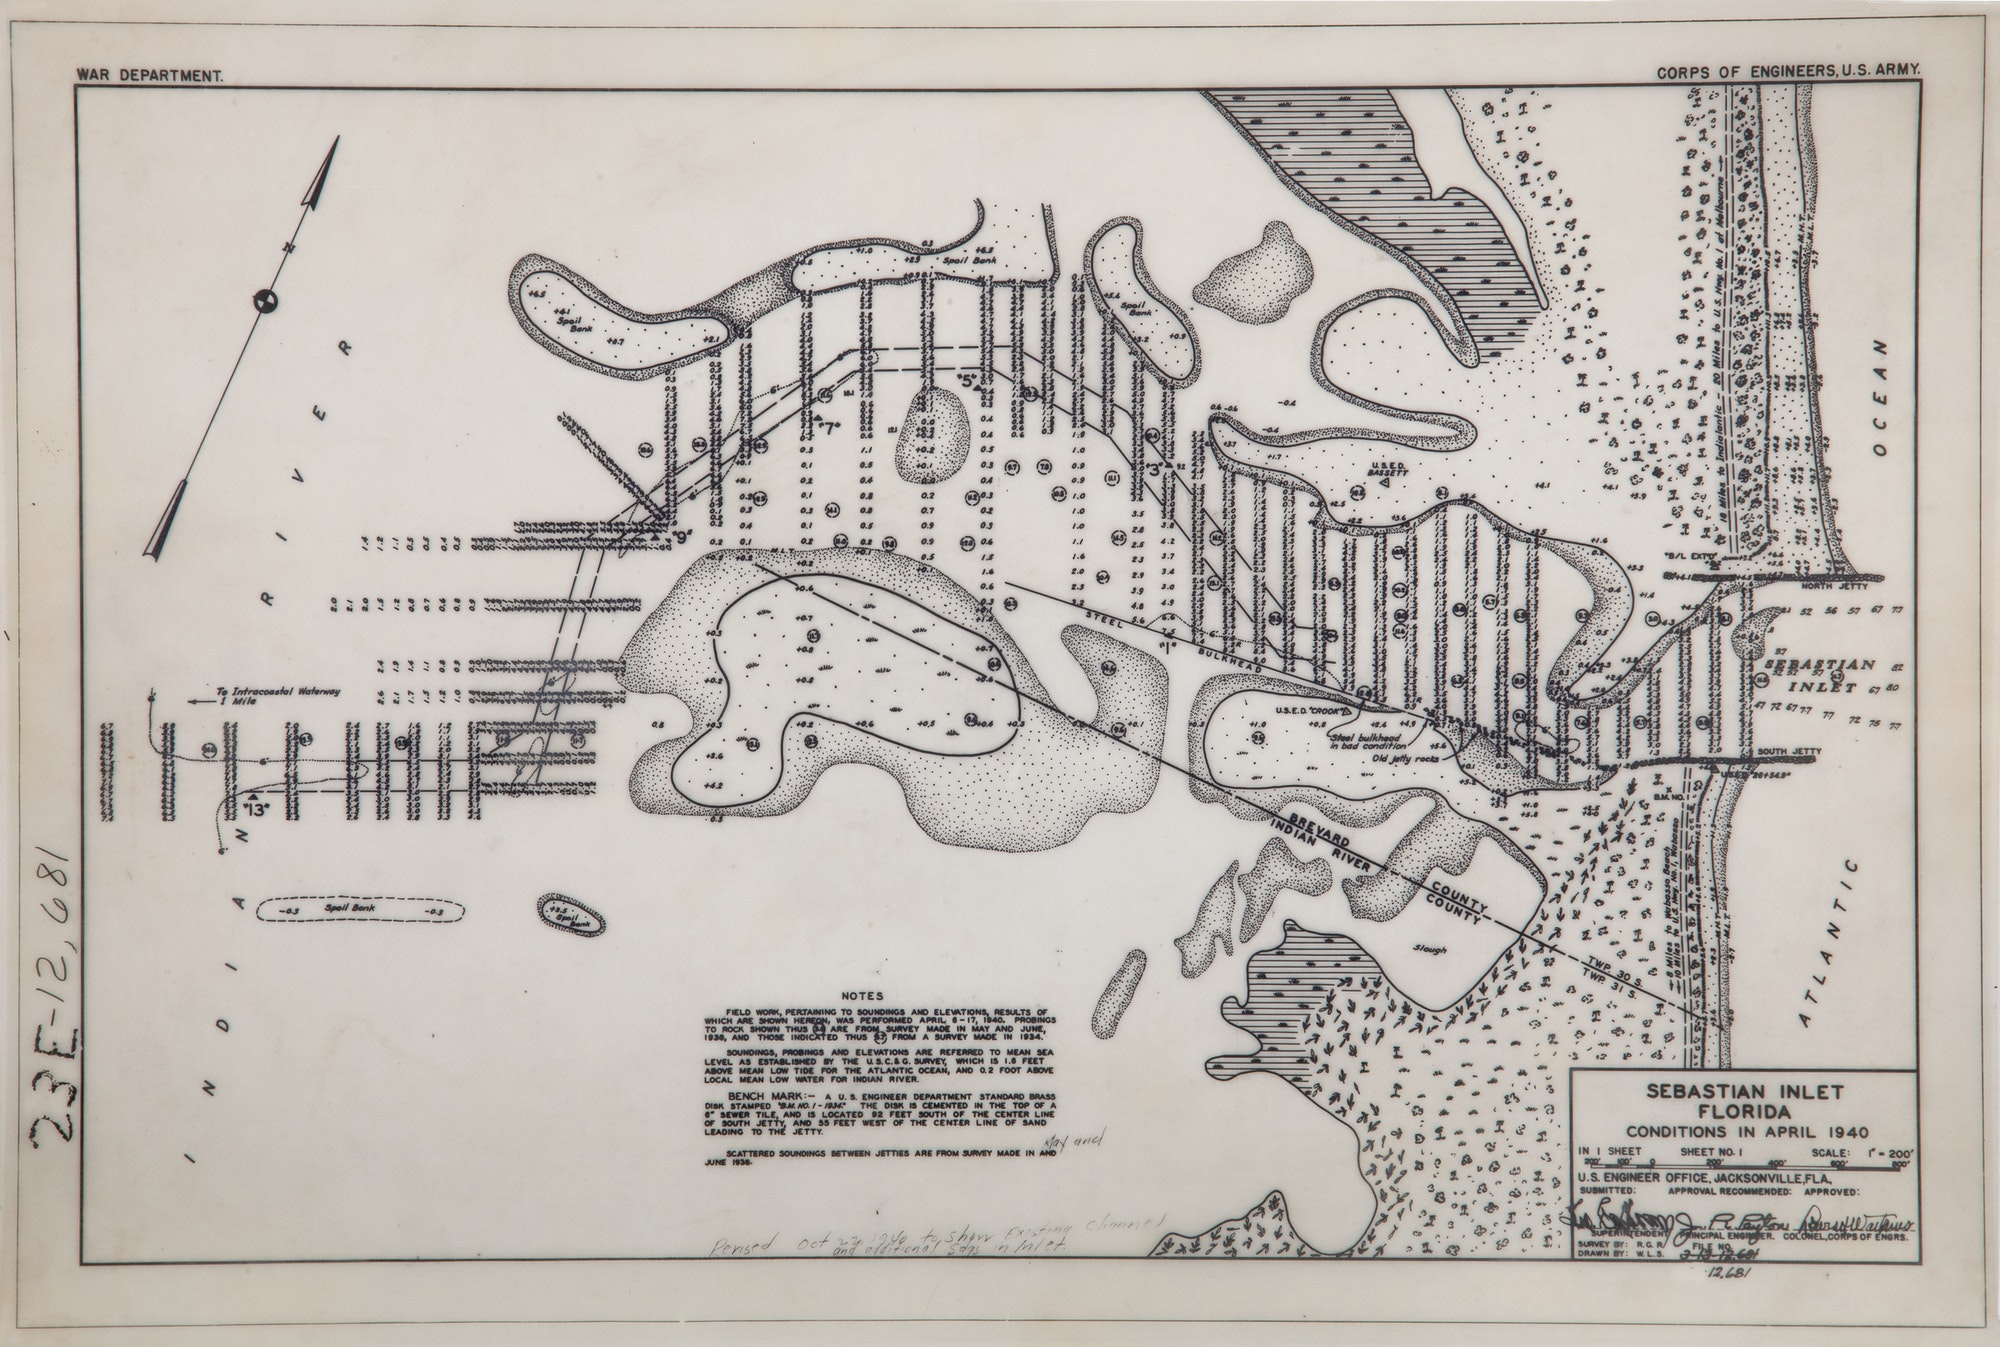 April 1940 hand-drawn bathymetric survey of the entire inlet system